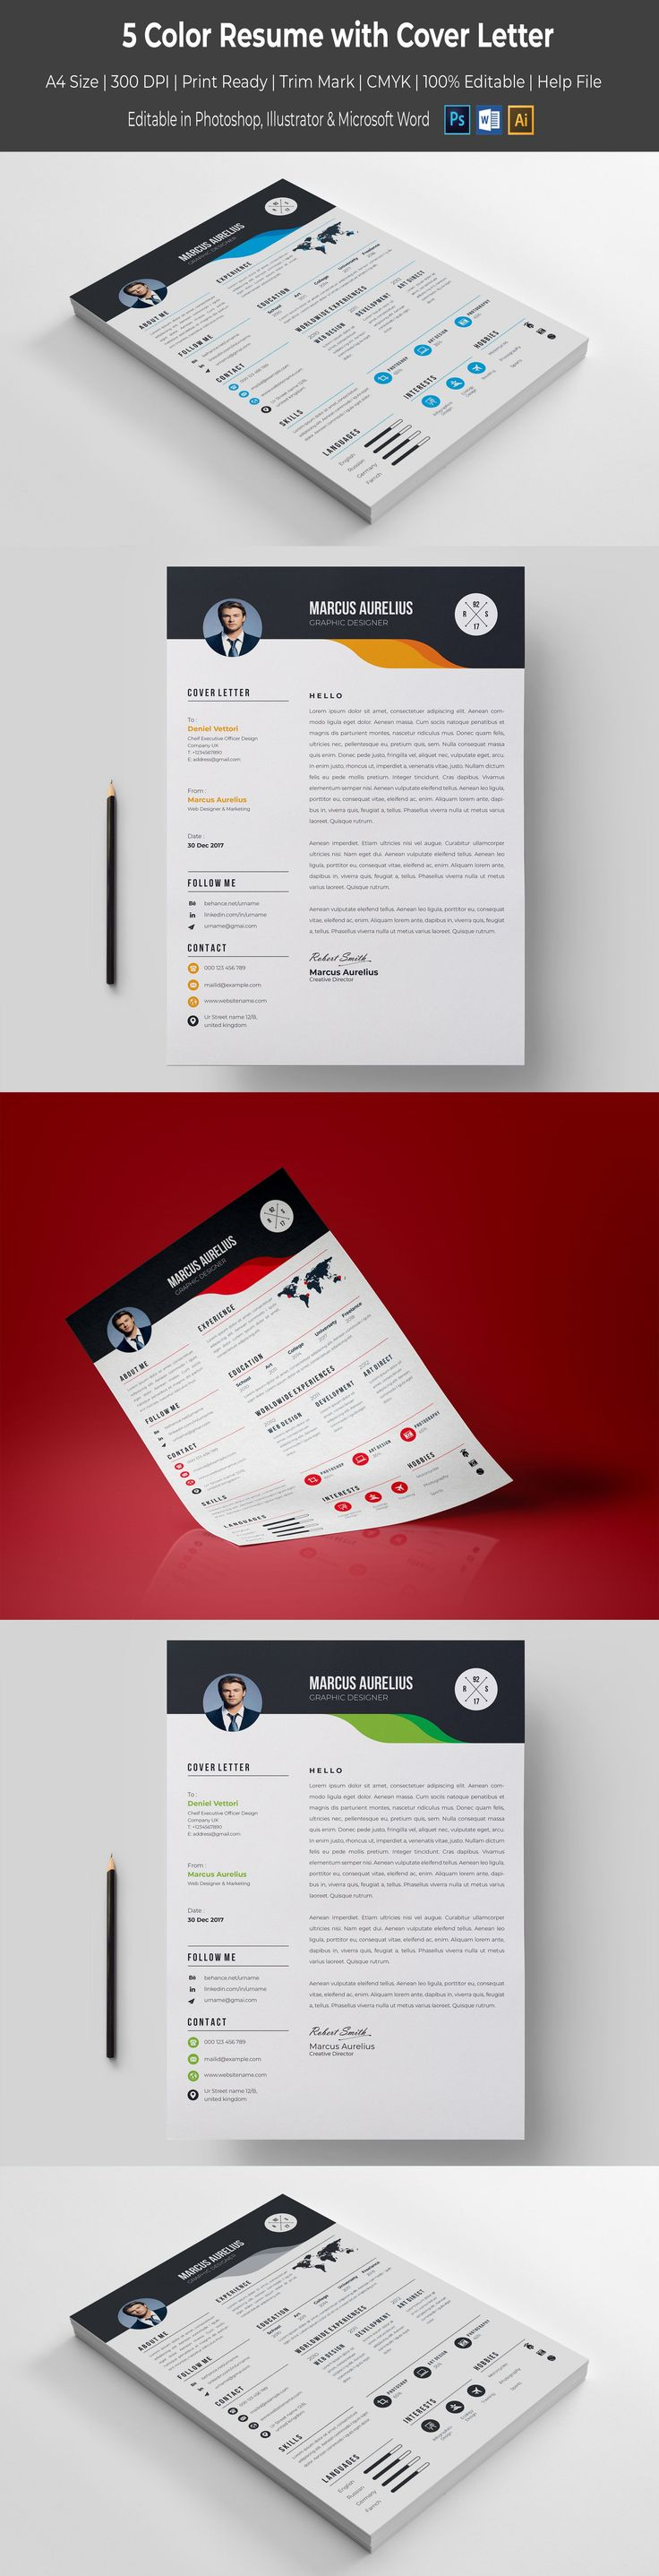 Get easily a desirable job with our 5 Color Resume Template. Choose your favorite color and good luck! #cvdesign #resumedesign #https://www.templatemonster.com/resumes/5-color-resume-template-67450.html/